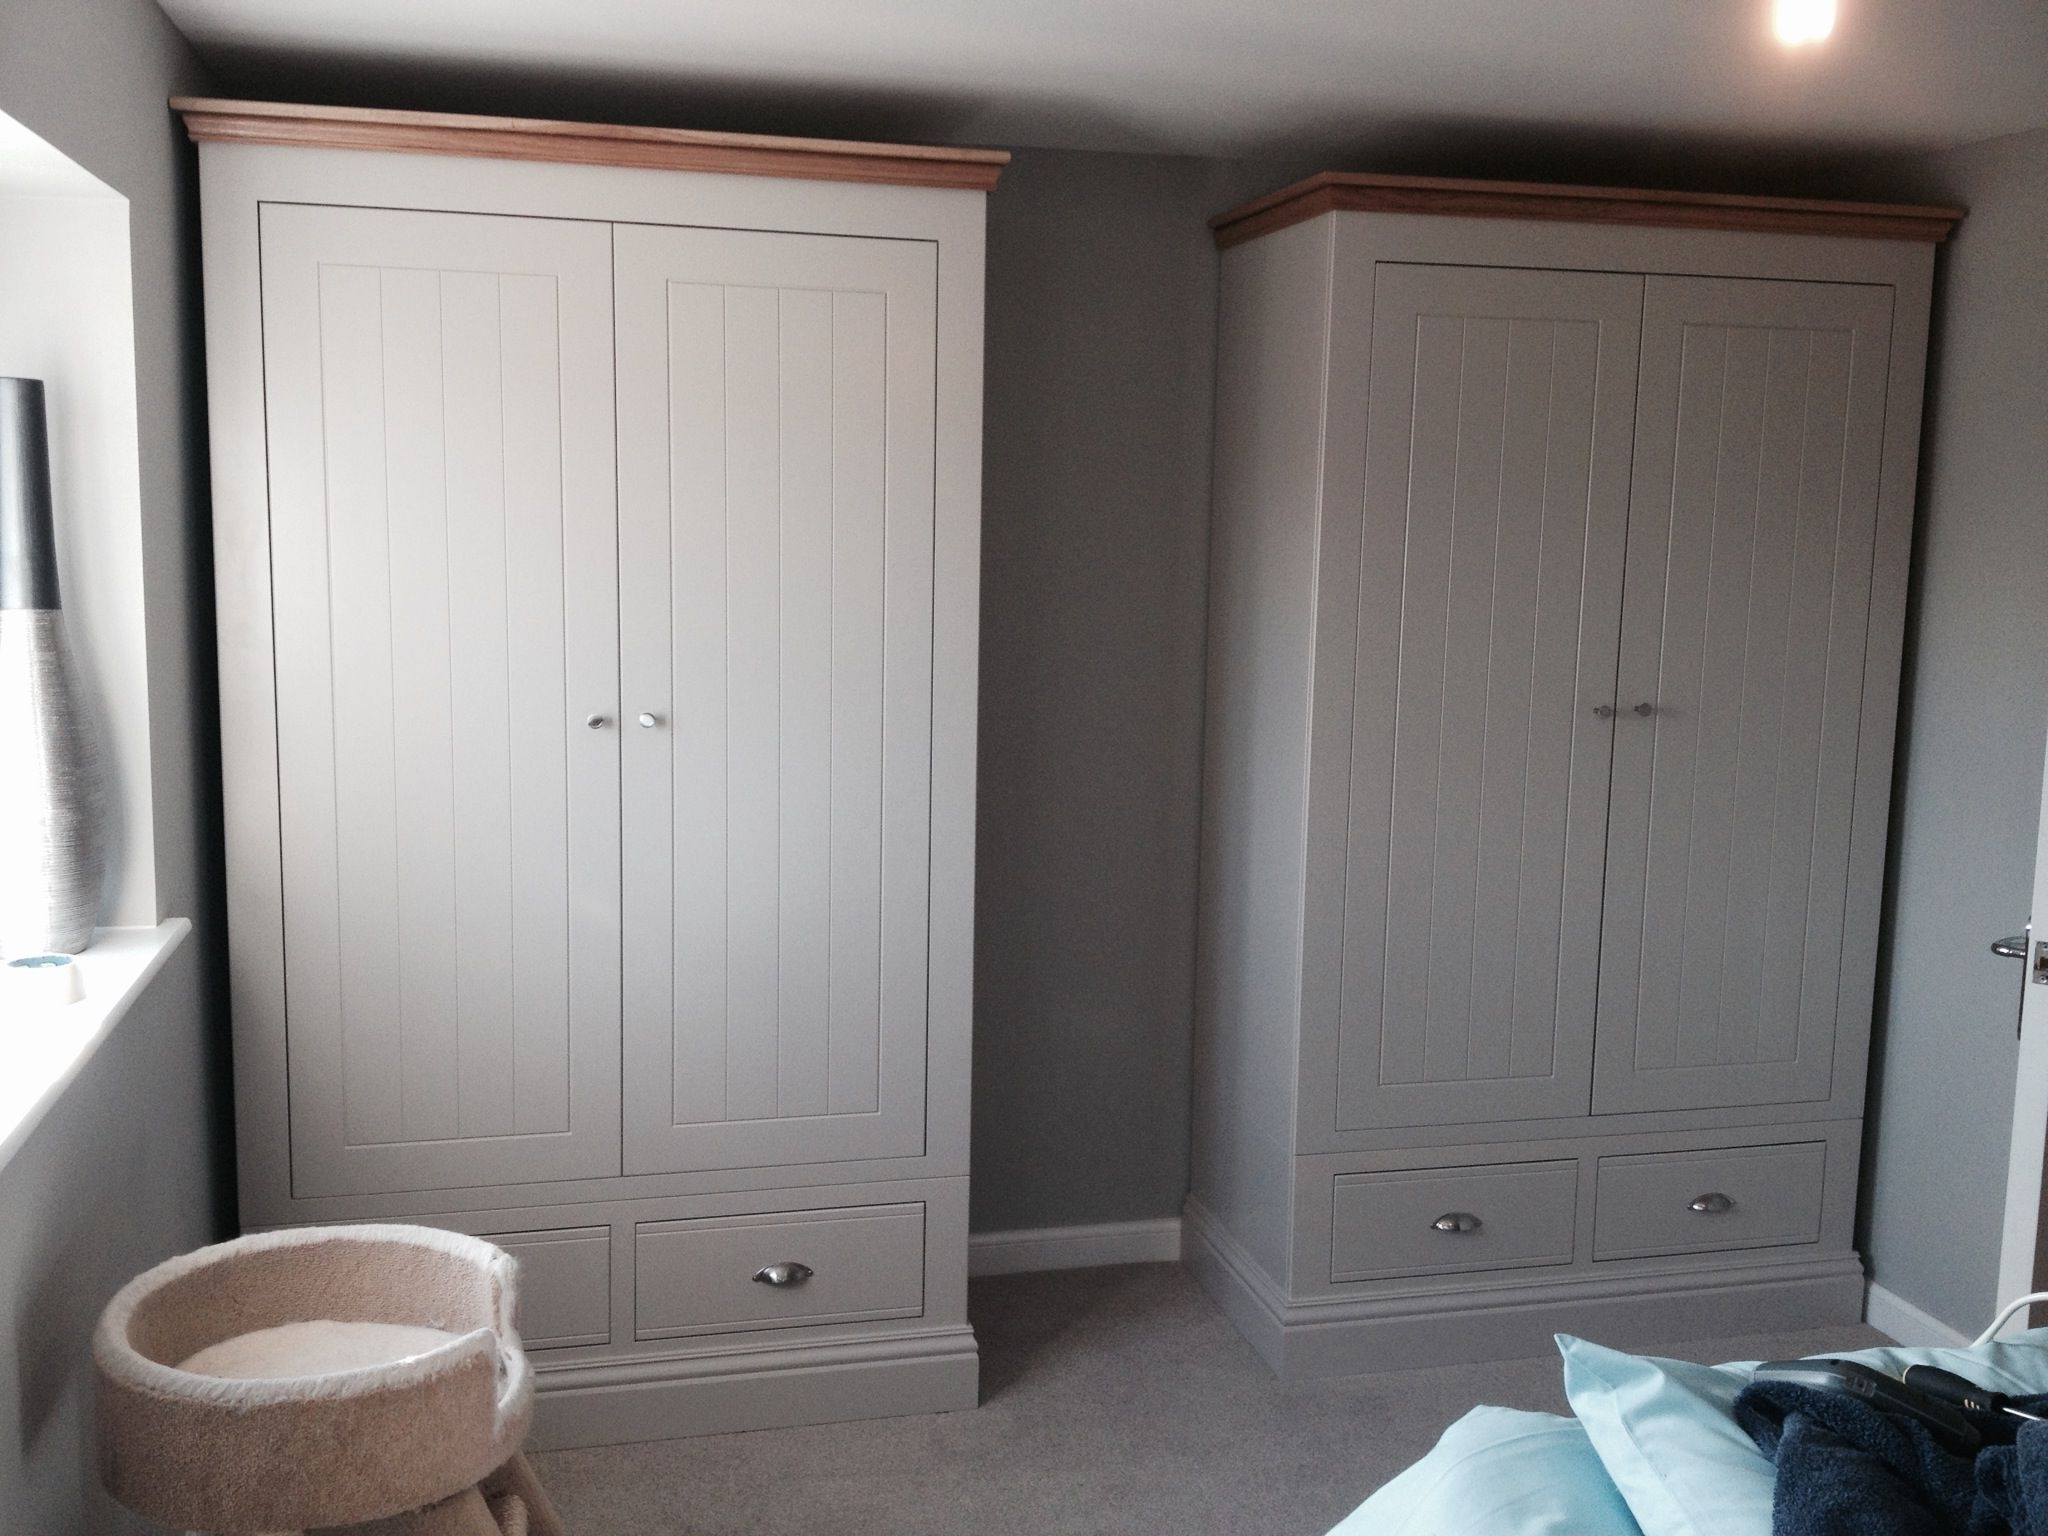 Trendy Tall Wardrobes Inside Two Of Our New England Extra Tall Wardrobes Installed Today (View 2 of 15)